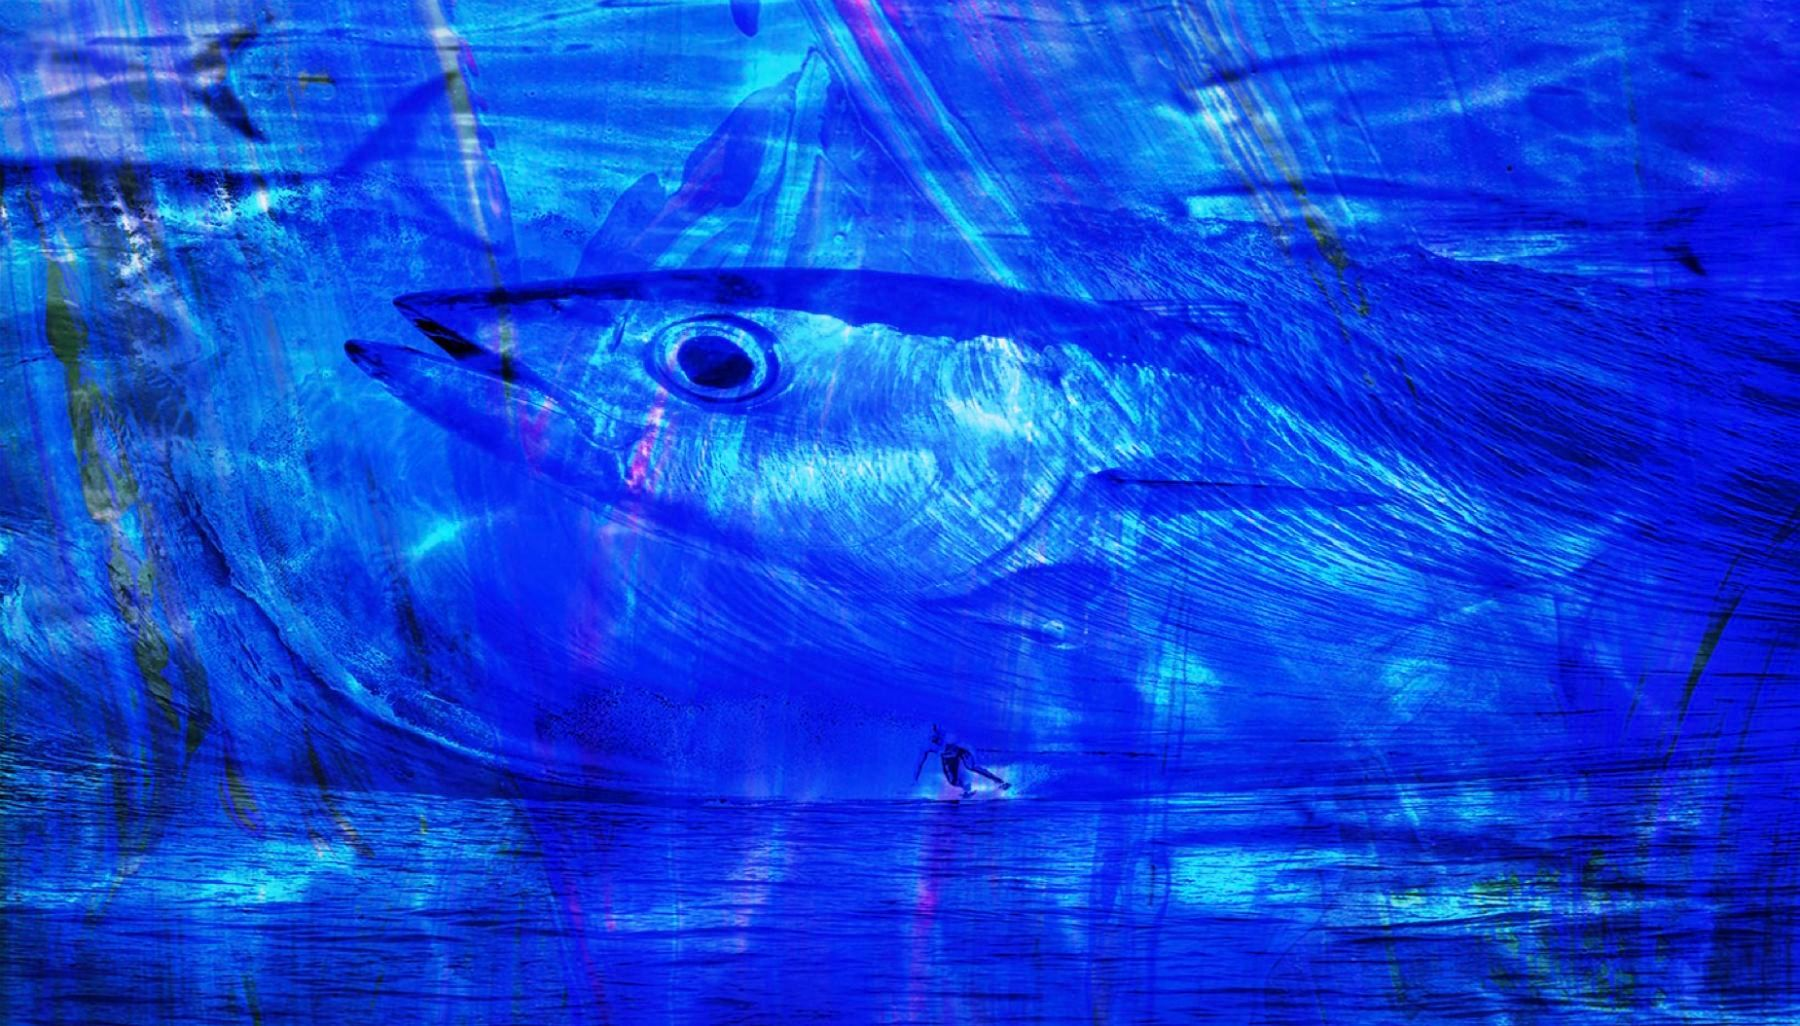 Abstract Fish with Surfer in Blue